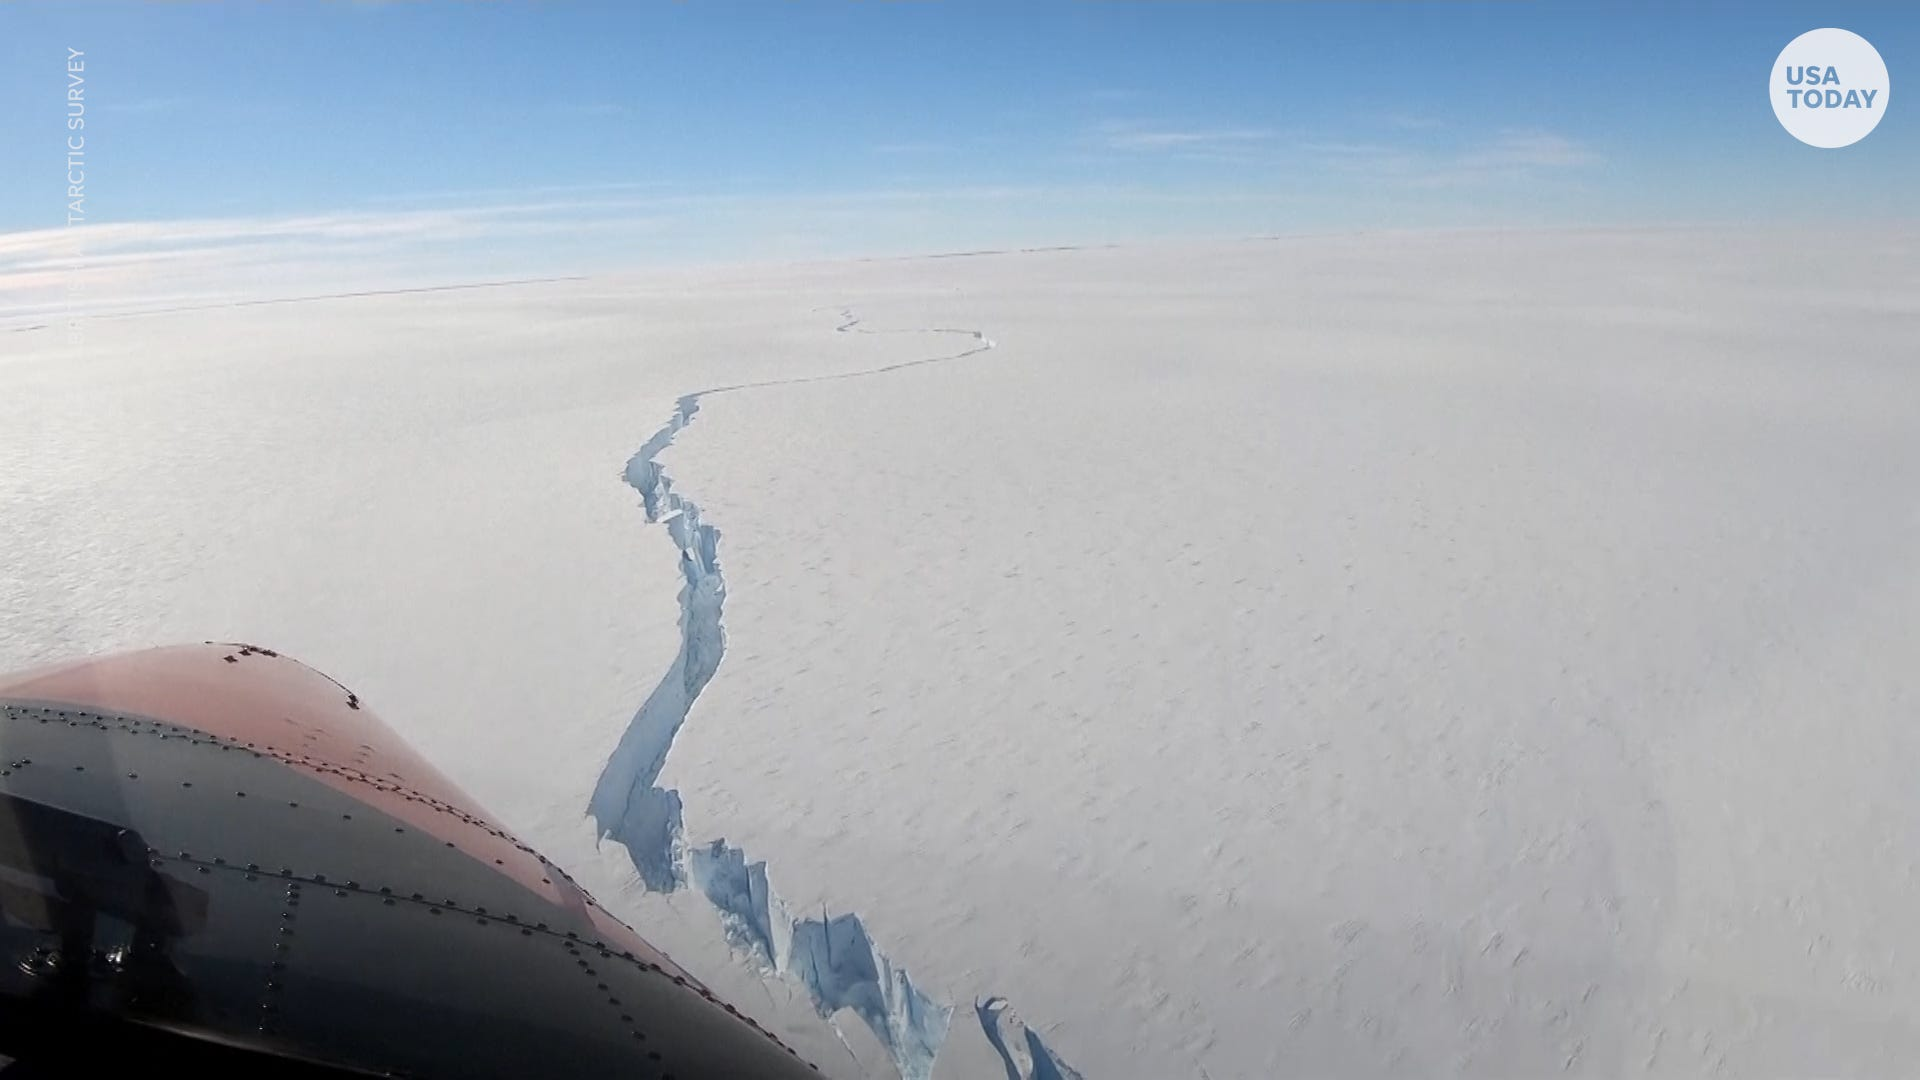 Iceberg bigger than New York City breaks off Brunt Ice Shelf